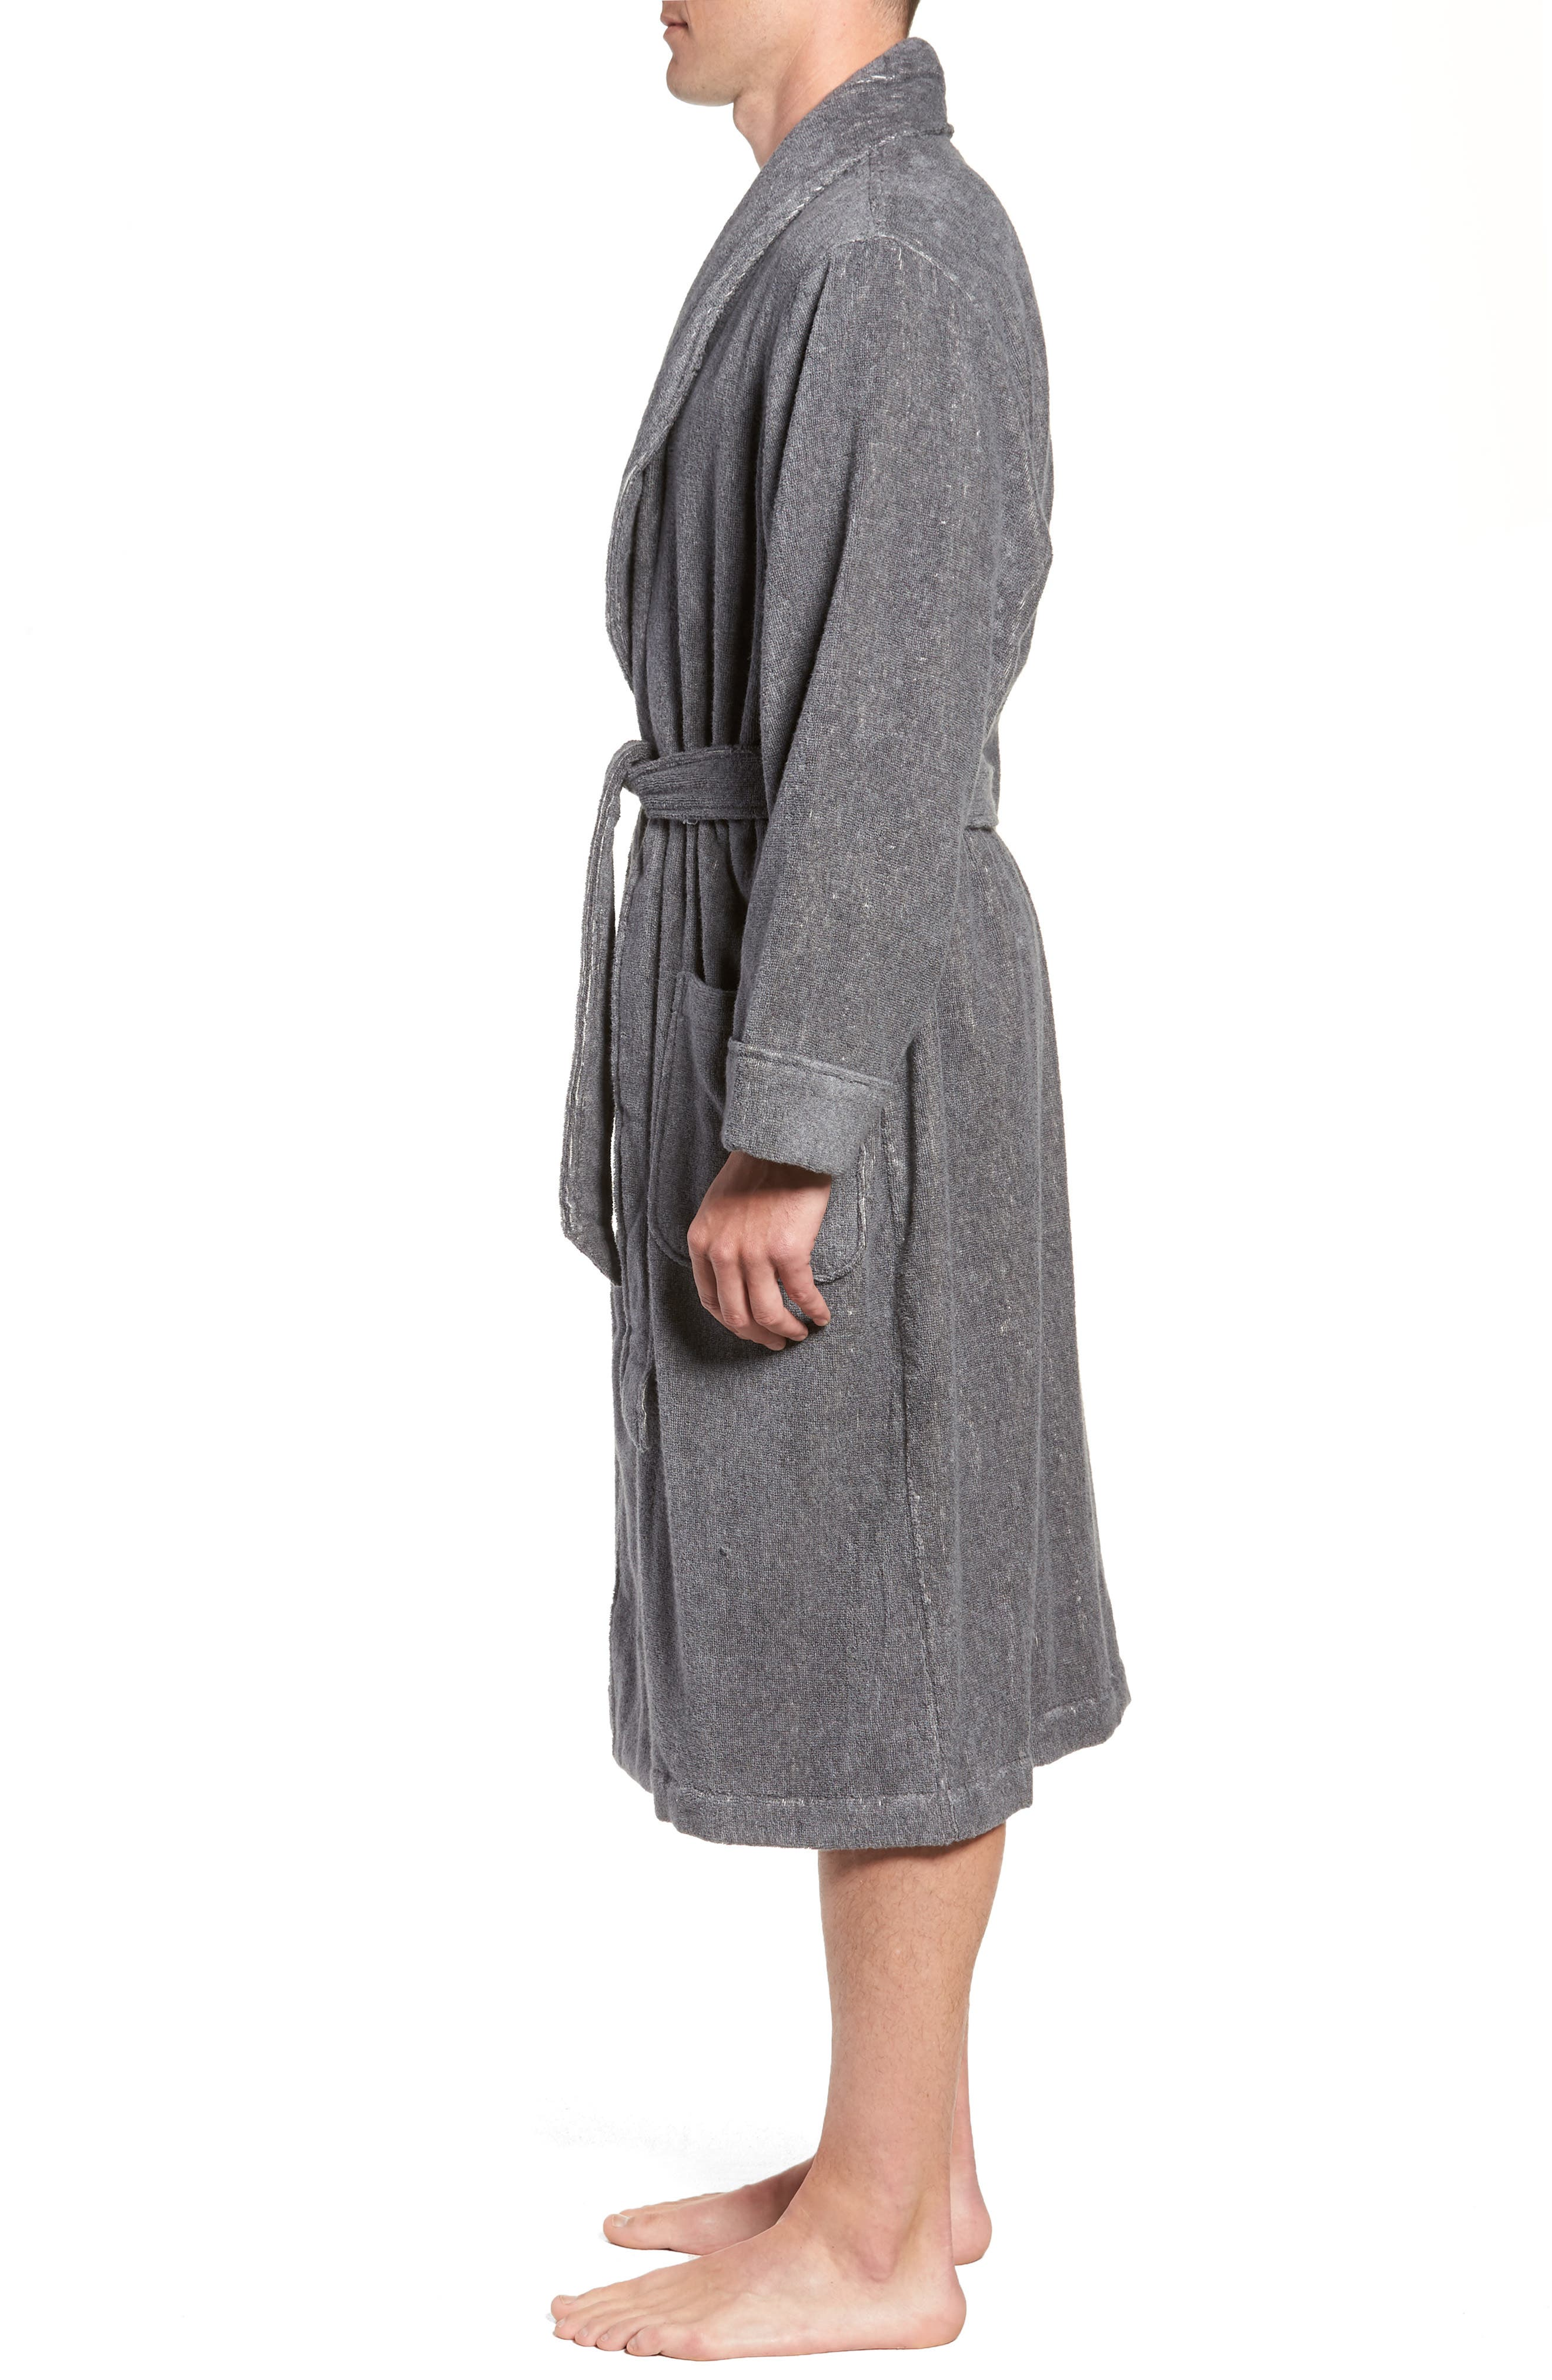 Hydro Cotton Terry Robe,                             Alternate thumbnail 3, color,                             022